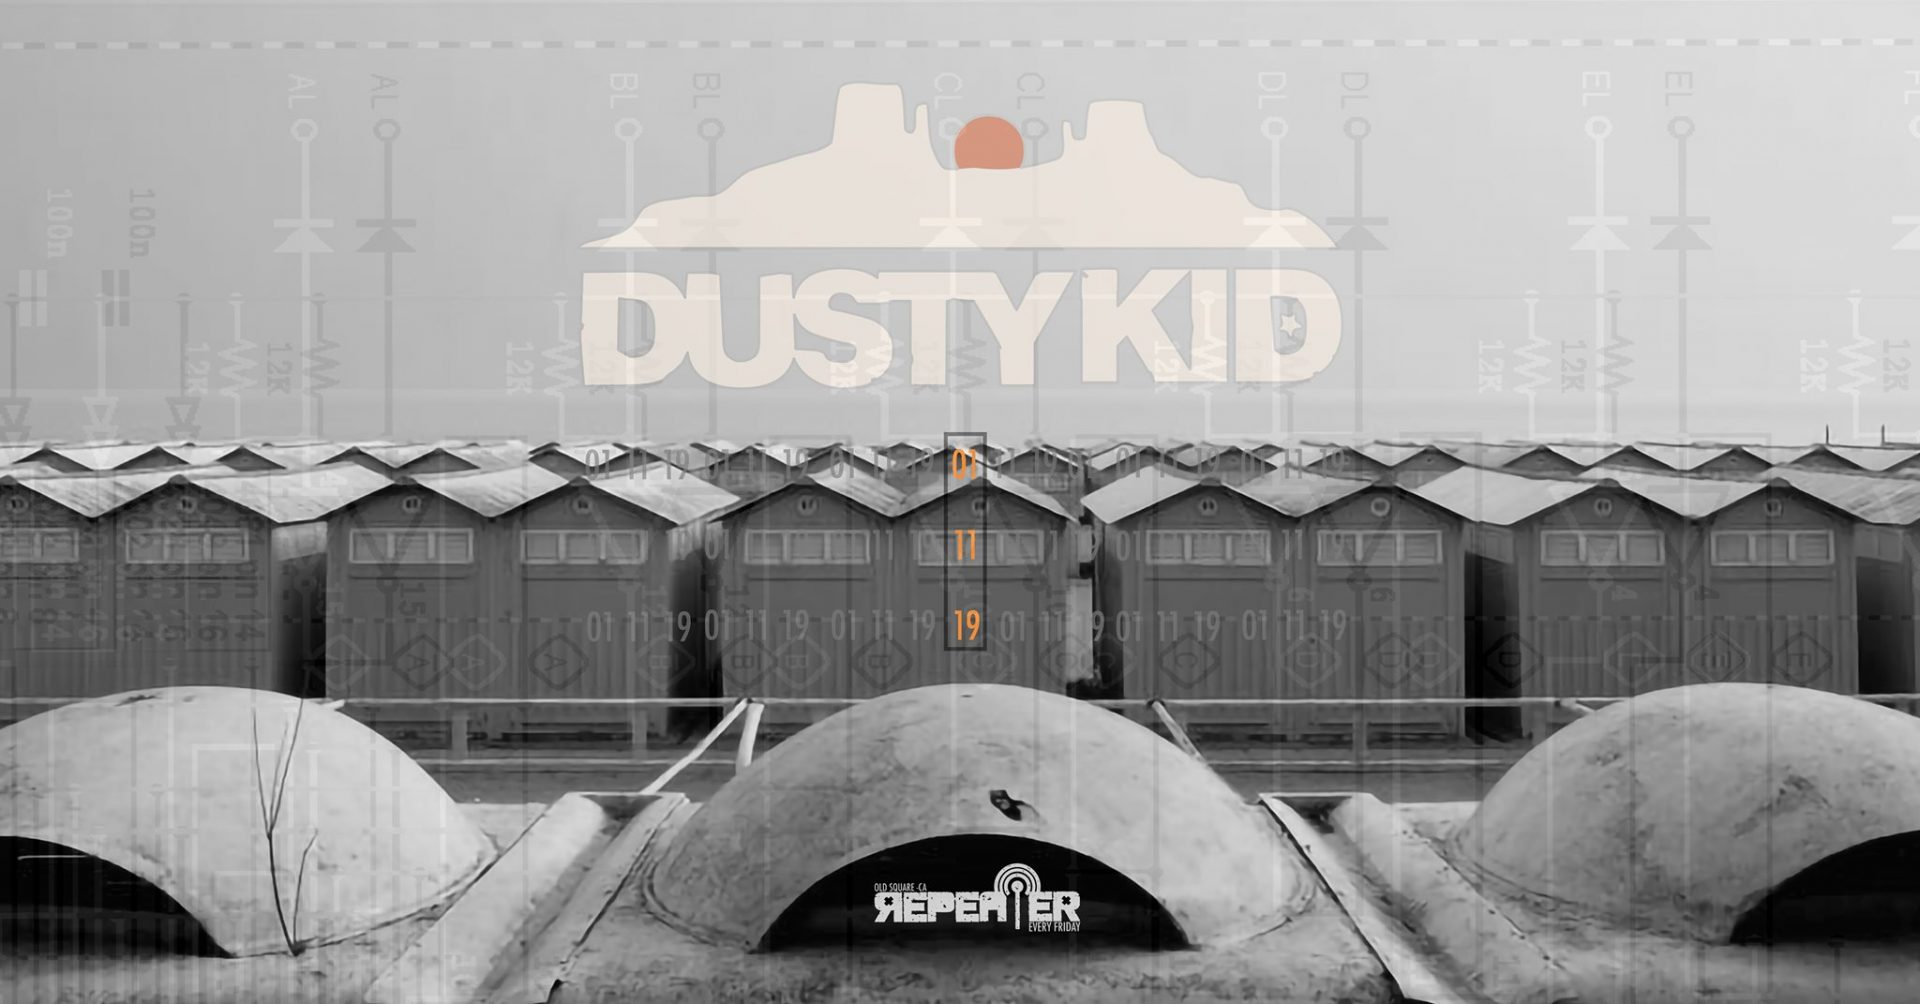 Repeater - Dusty Kid - Old Square - Cagliari - 1 novembre - 2019 - eventi - 2019 - Sa Scena Sarda